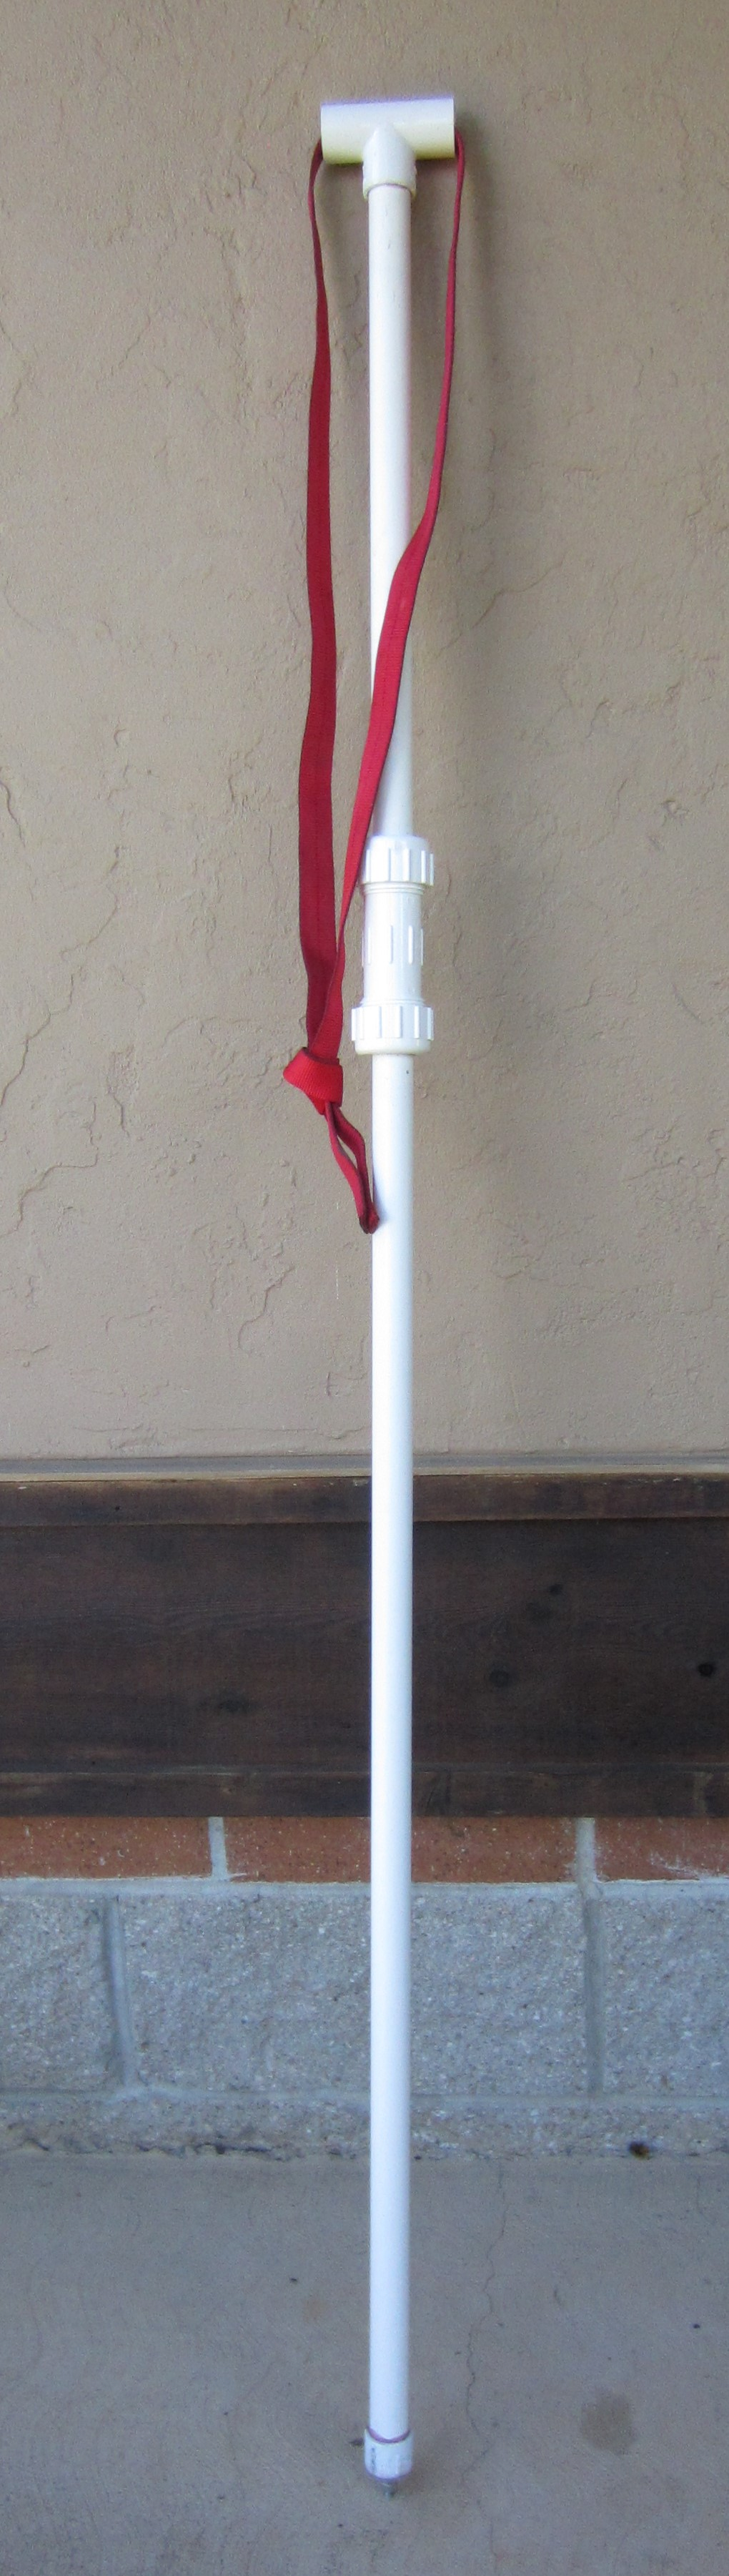 Picture of Trekking Pole/Hiking Staff